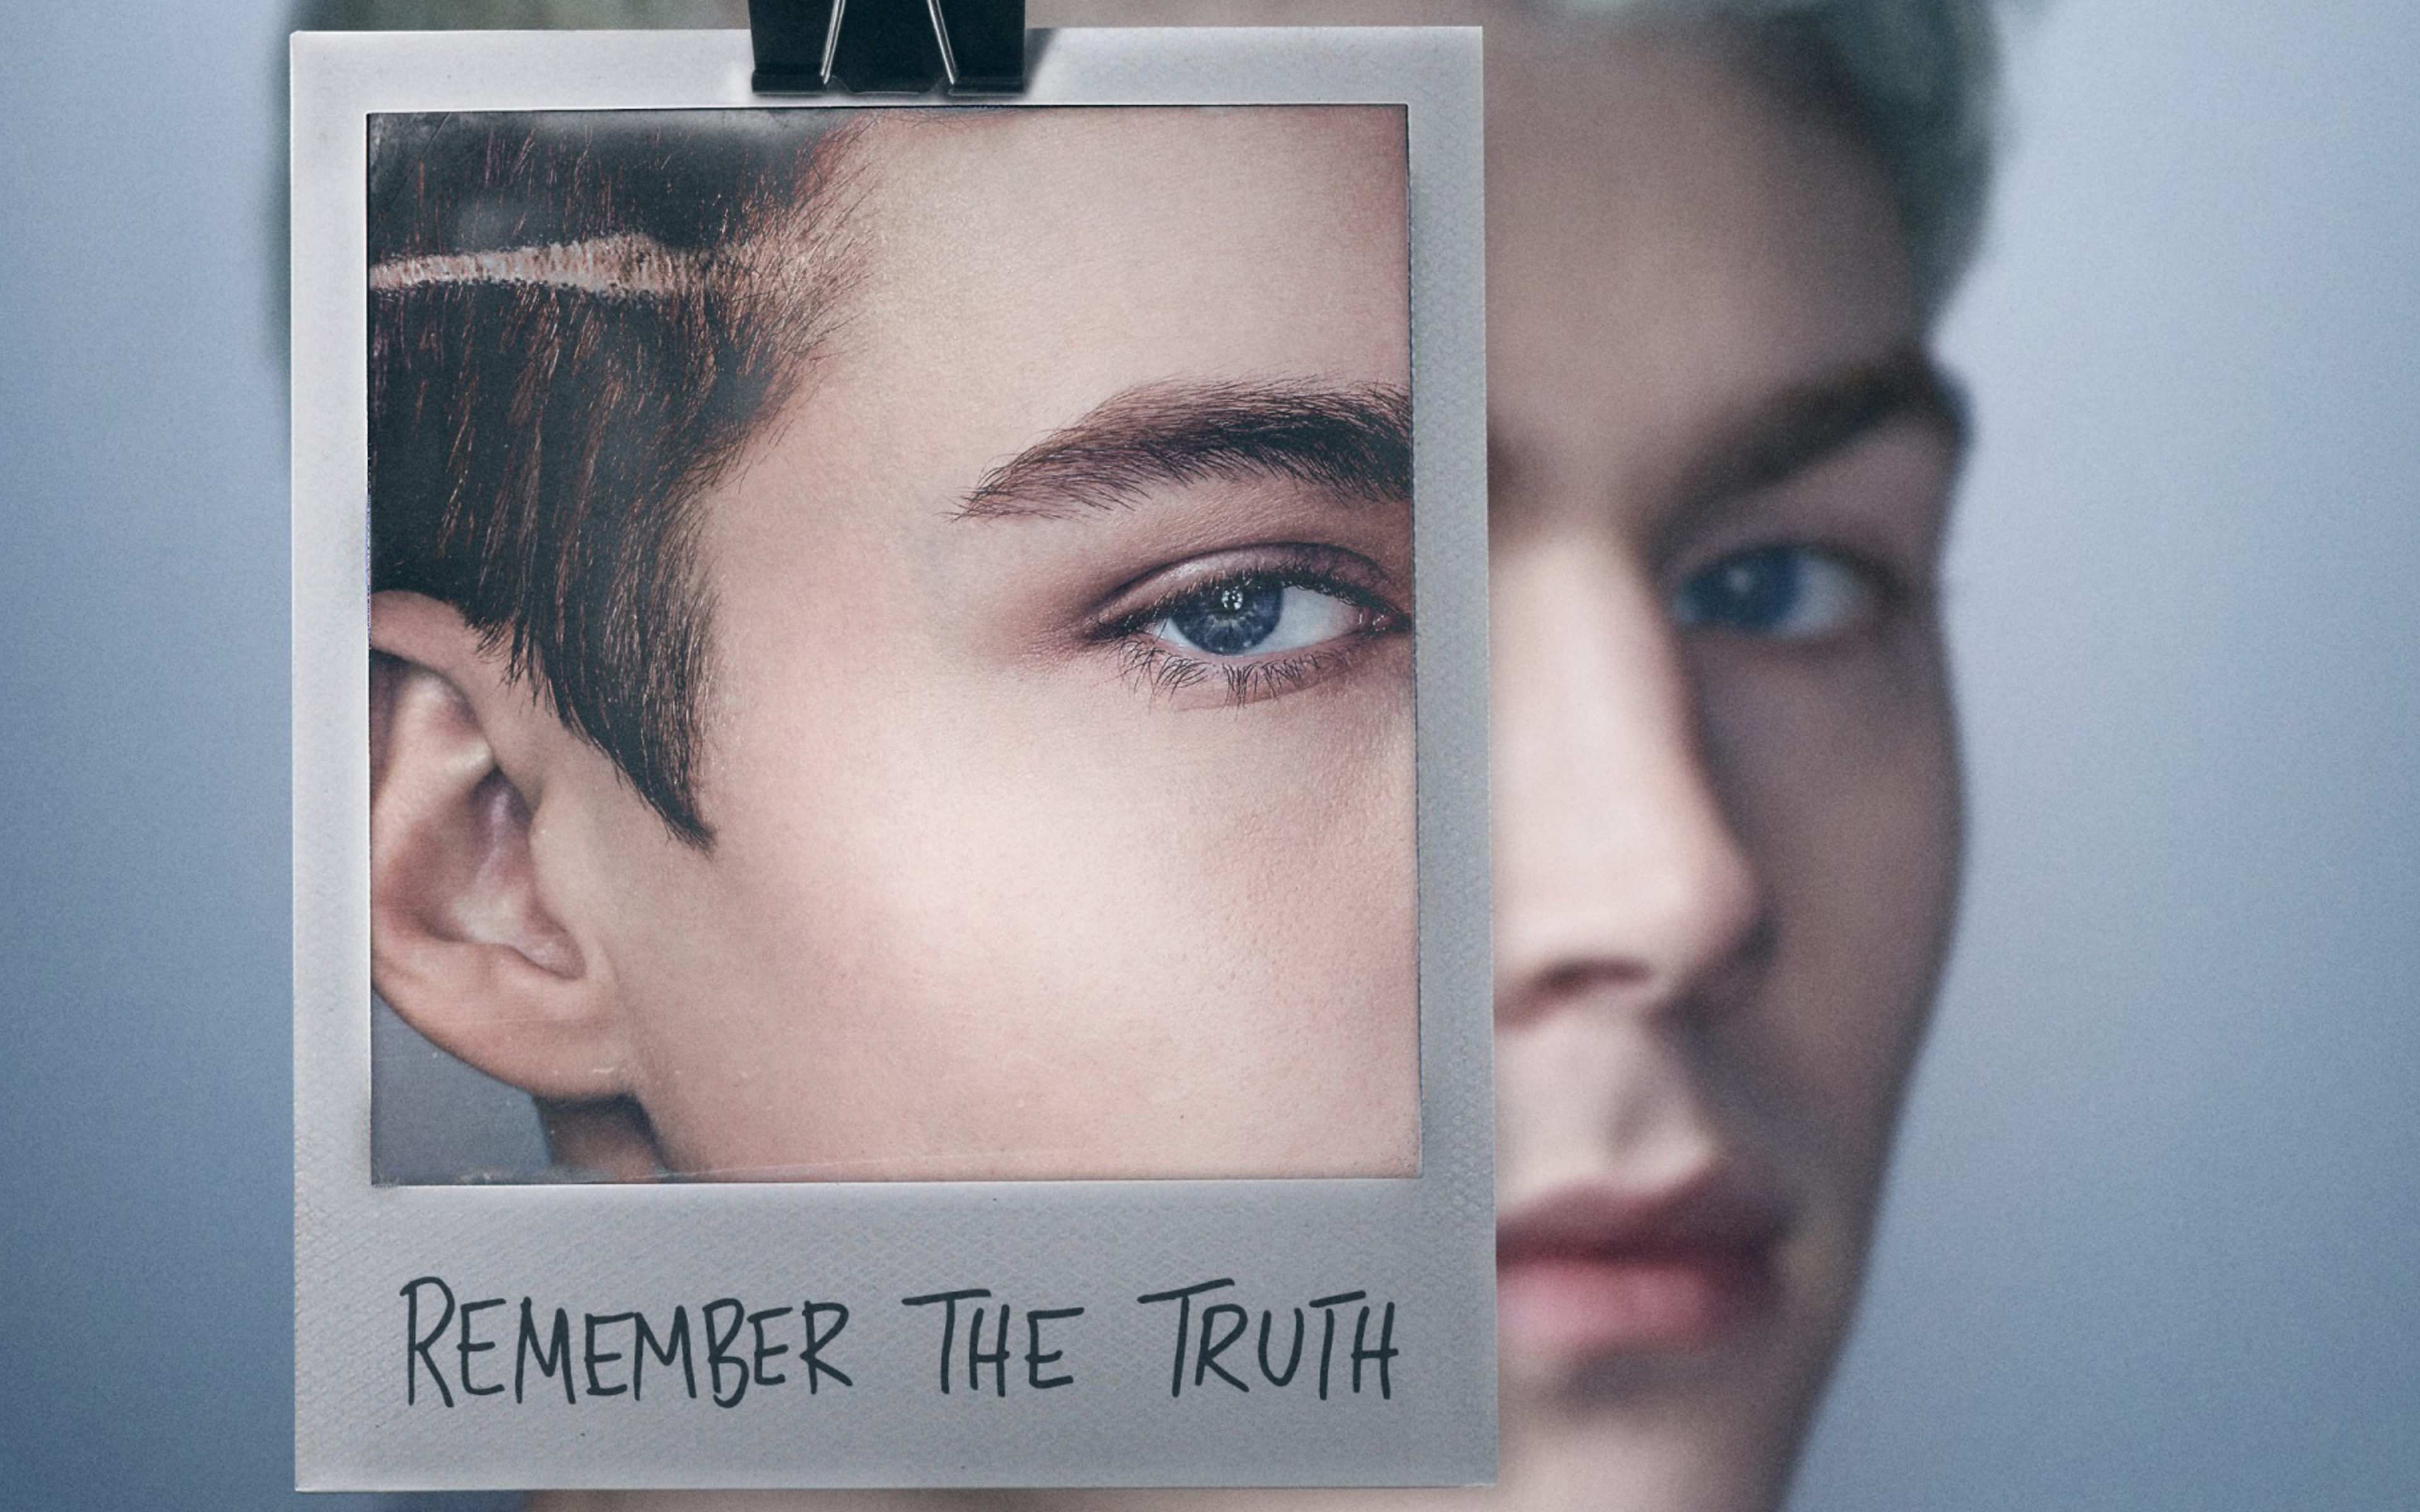 13 Reasons Why Season 2 13 Things To Think About If Your Kids